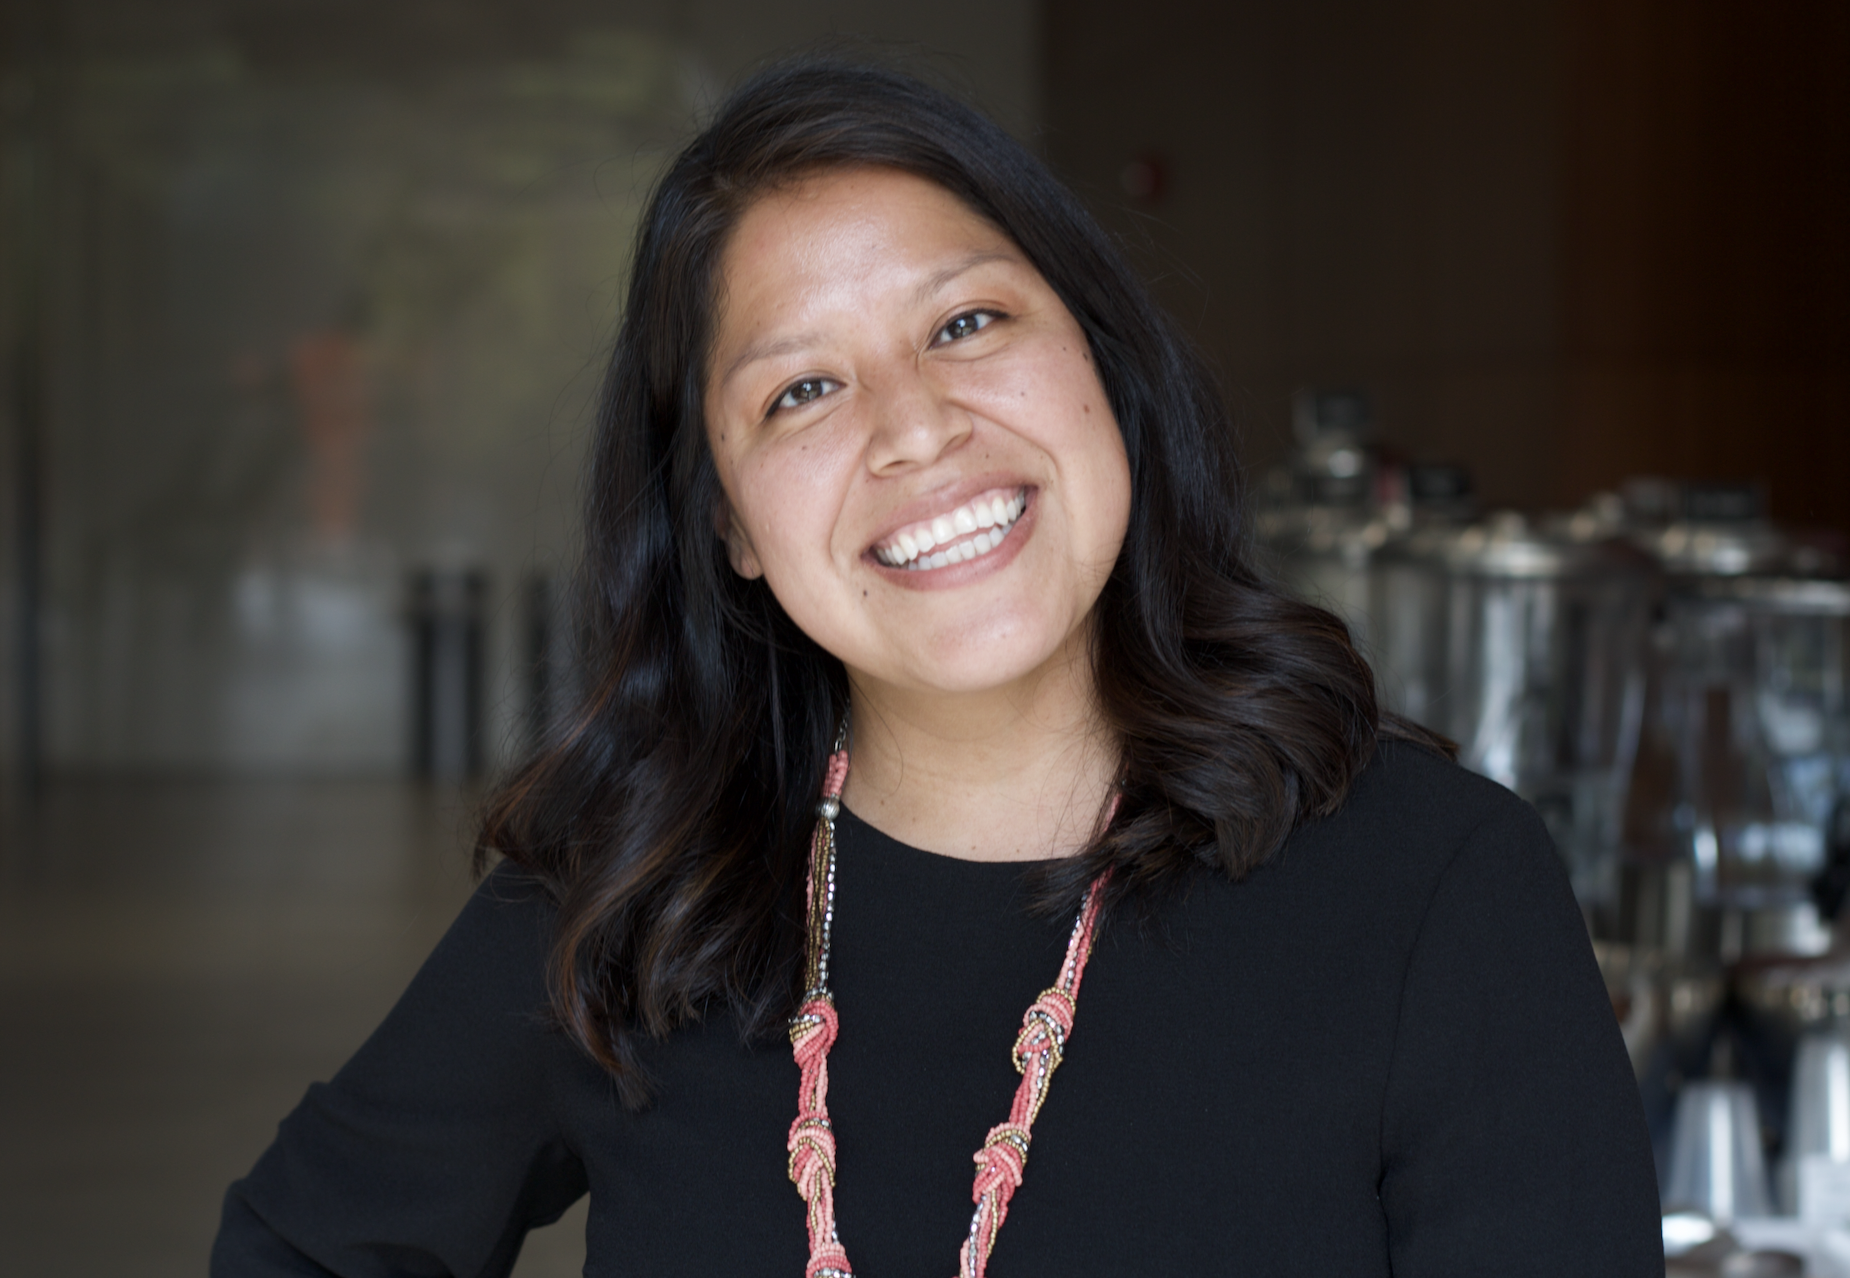 The Graduate School Celebrates Latinx Heritage Month—and a Diversity of Voices in Higher Education: Yesenia Pedro Vicente